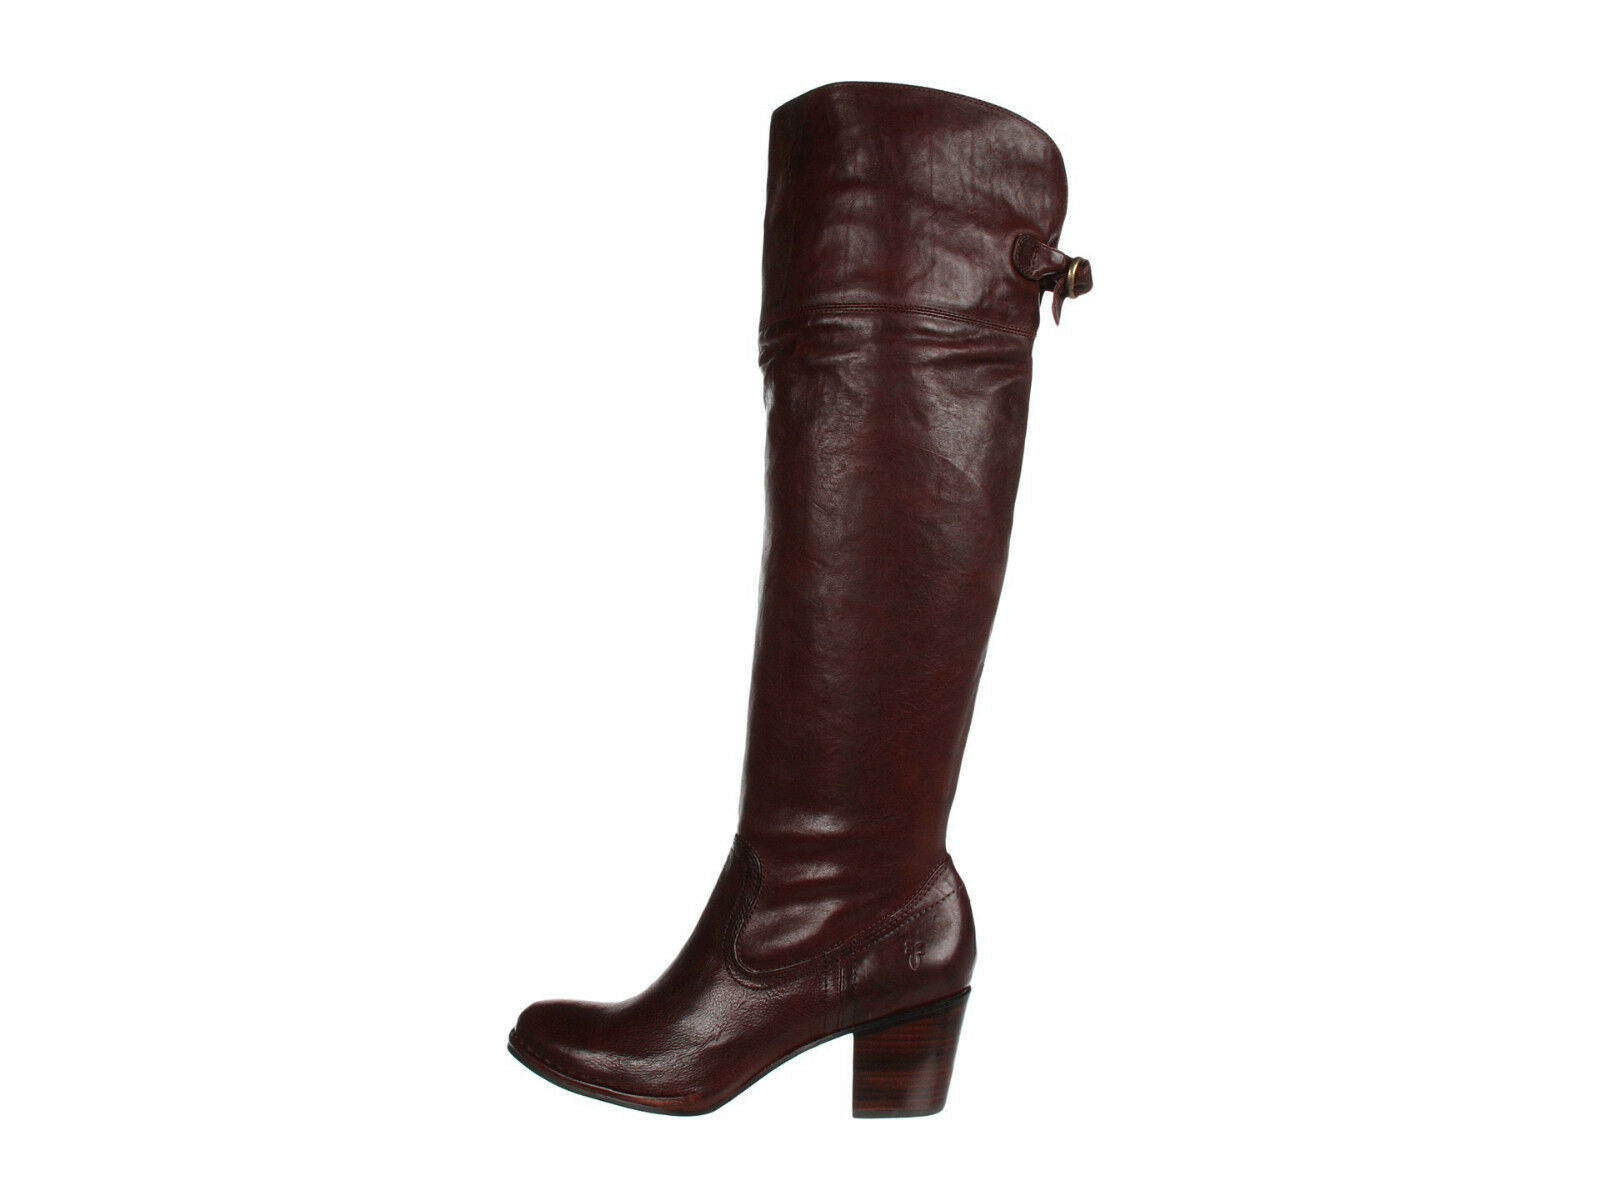 Frye Lucinda Slouch Leather Boots Dark Brown Vintage New in in in Box Retail  448 boot 9b751b